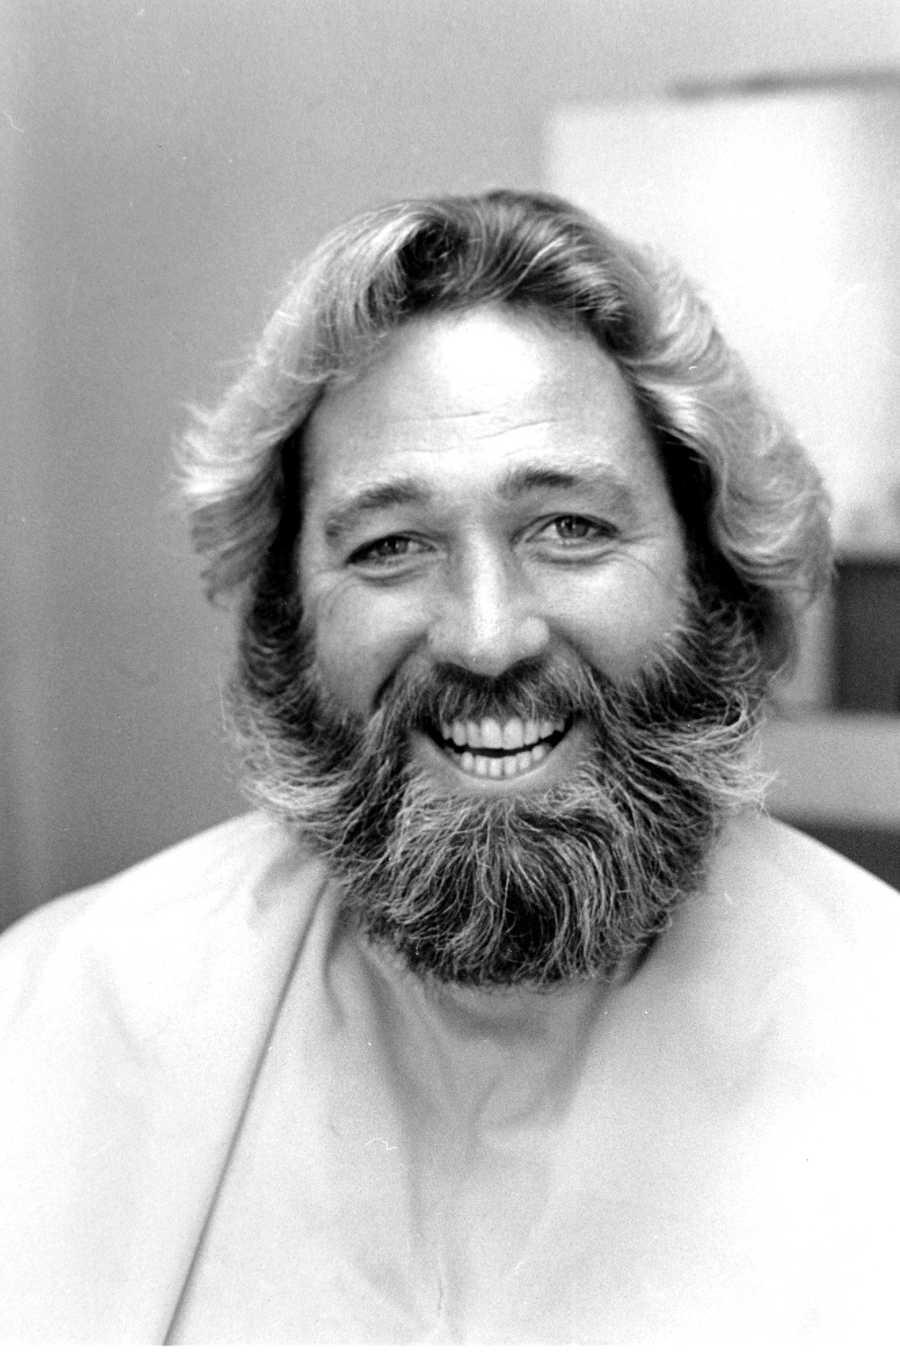 """Dan Haggerty, better known as TV's """"Grizzly Adams,"""" died on Jan. 15 at age 74"""